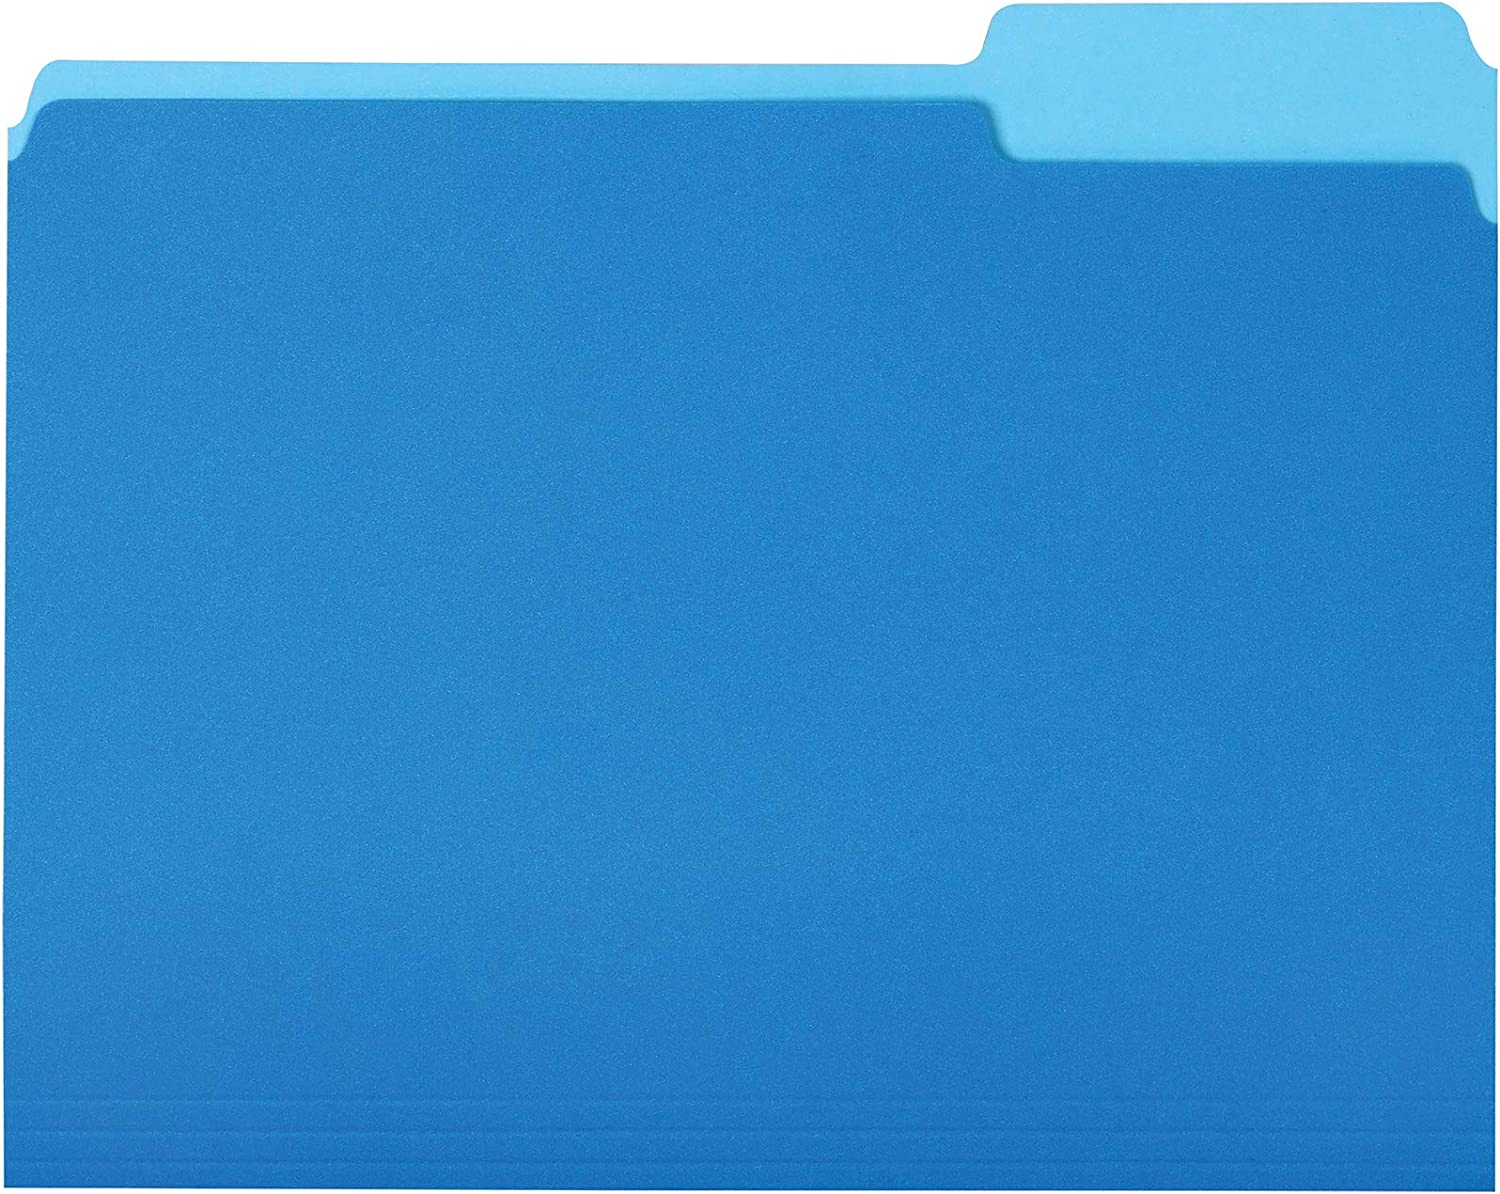 AmazonBasics File Folders, Letter Size, 1/3 Cut Tab, Blue, 36-Pack